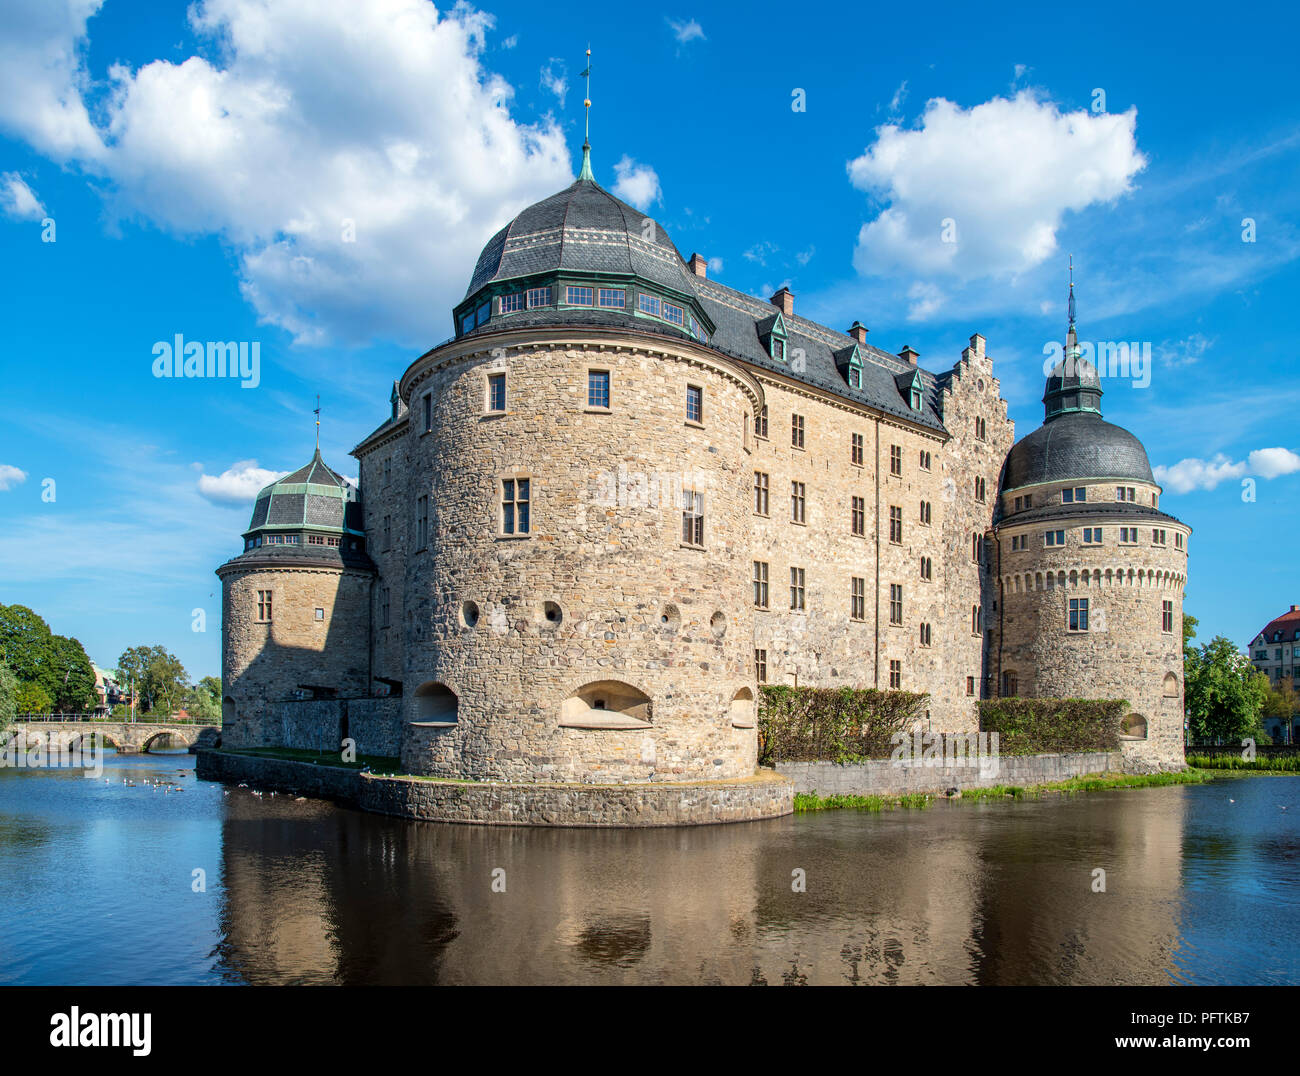 Örebro Castle, a medieval fortification in the middle of the Svartån river, Örebro , Närke, Sweden - Stock Image